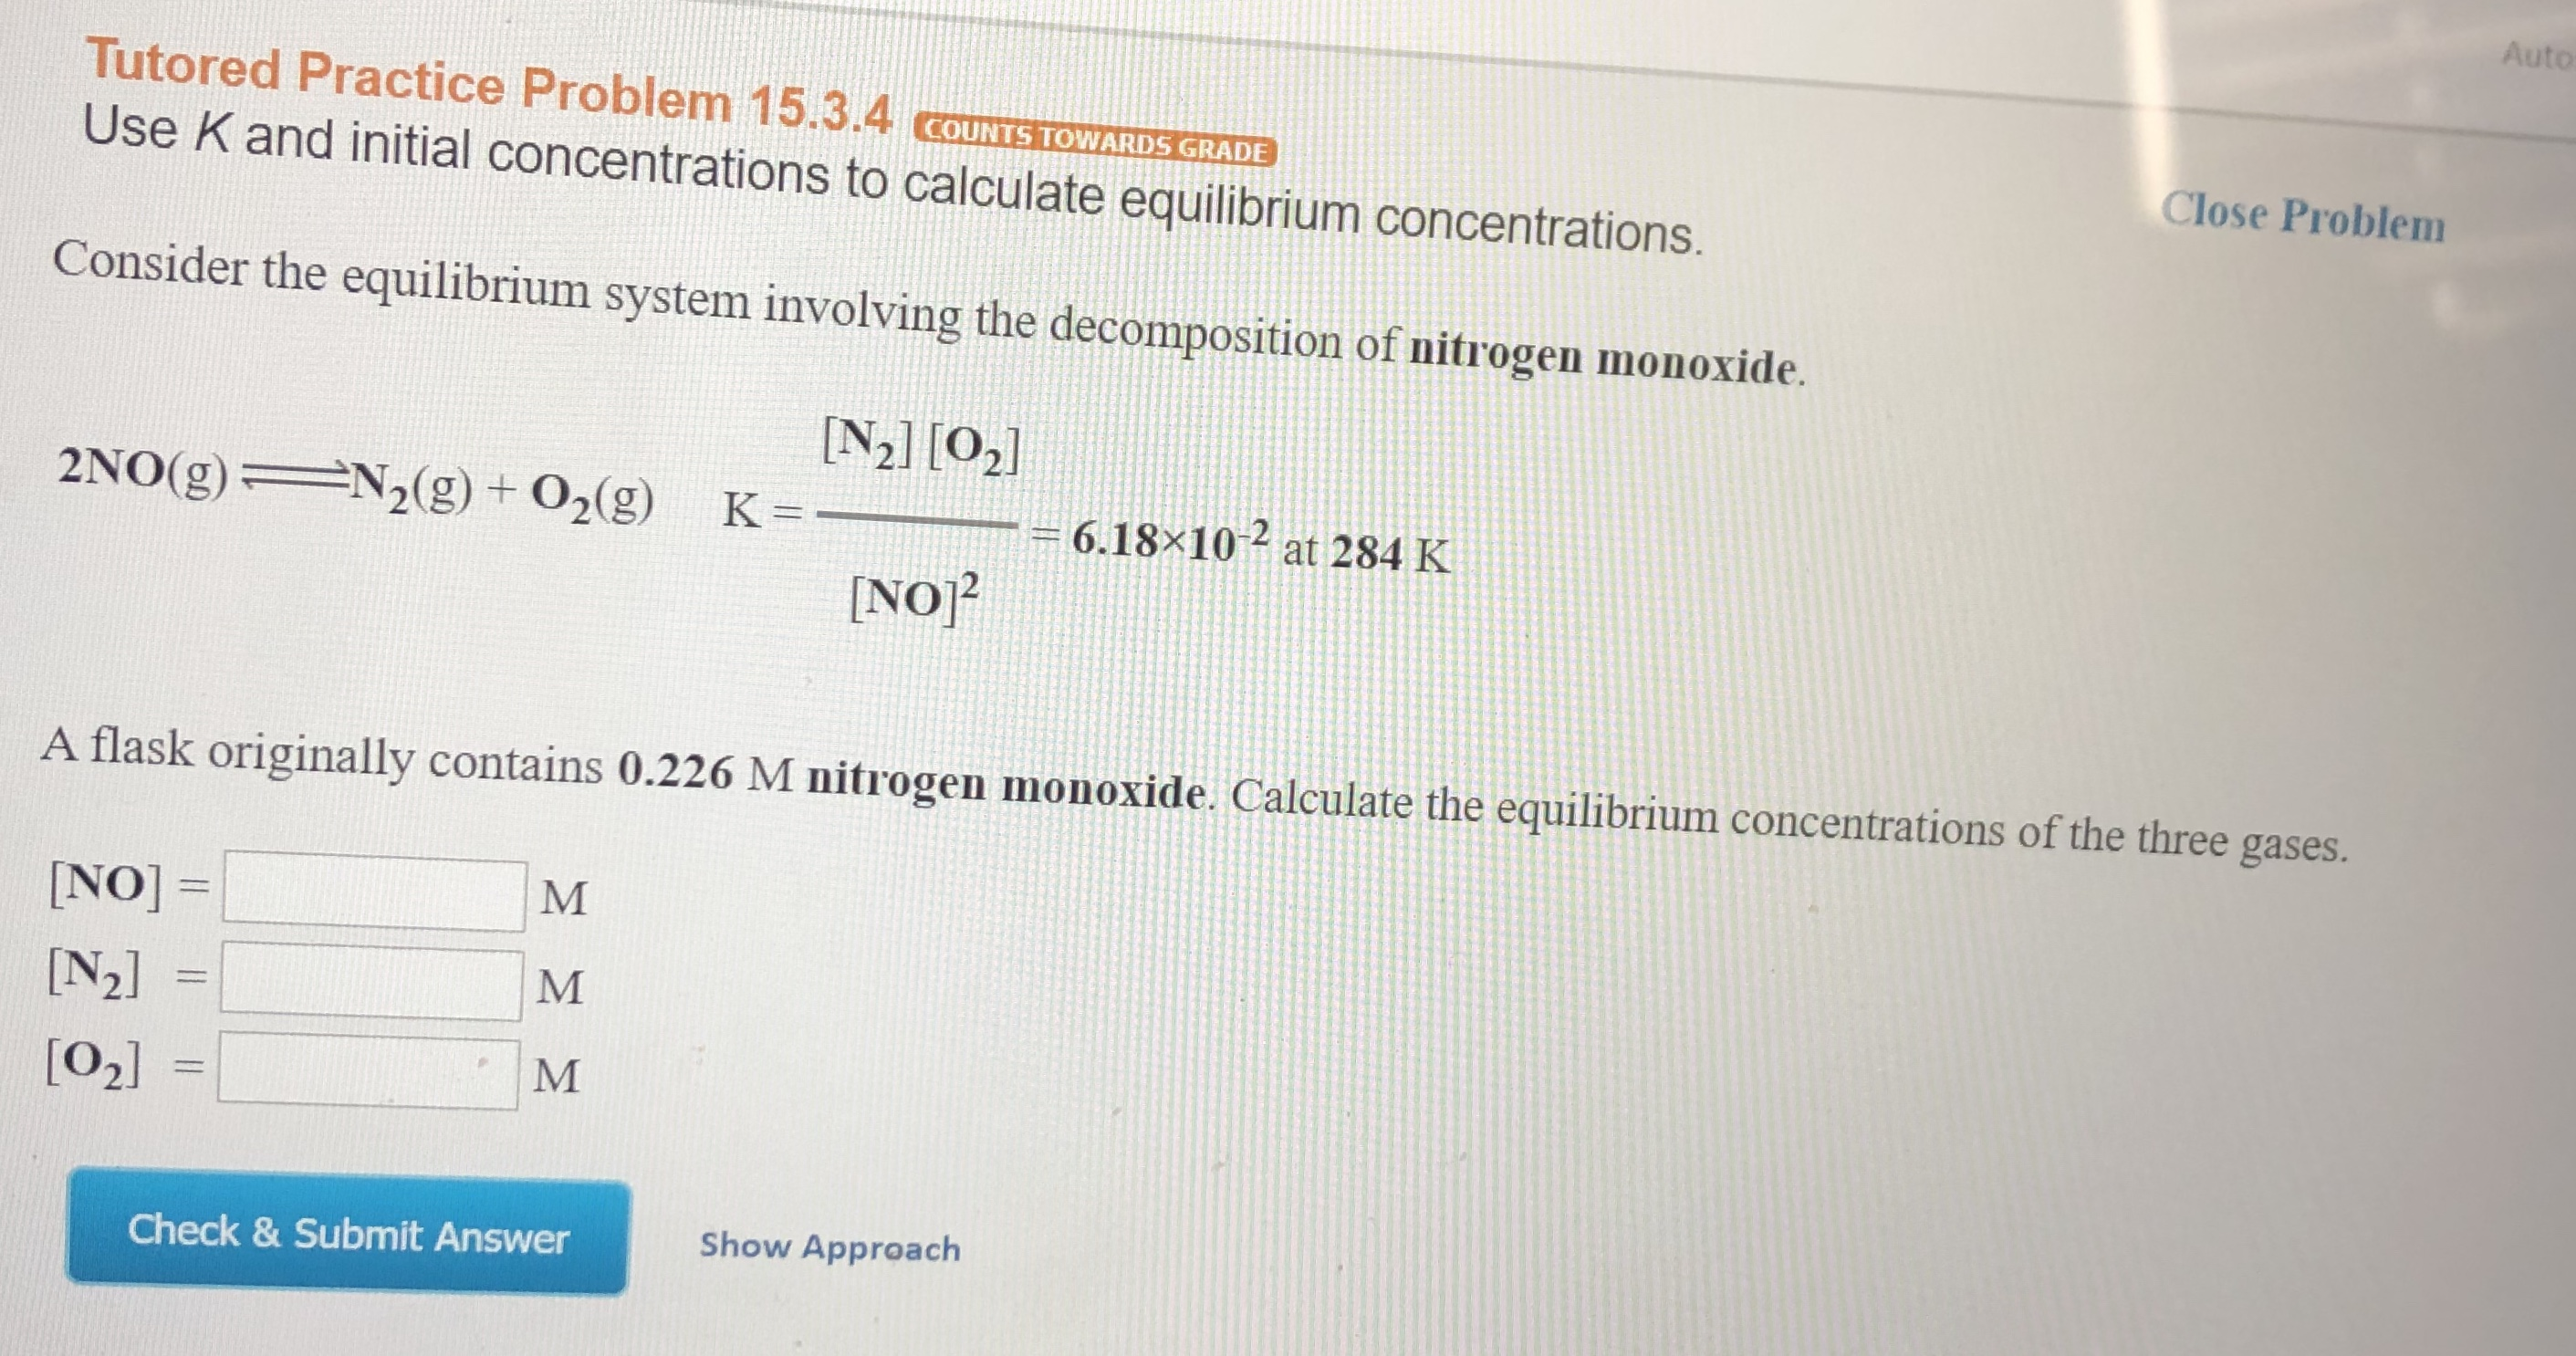 Auto Tutored Practice Problem 15.3.4 cOUNTS TOWARDS GRADE Close Problem Use K and initial concentrations to calculate equilibrium concentrations. Consider the equilibrium system involving the decomposition of nitrogen monoxide. N2] [02 N2(g) + 02(g) 2NO(g) K = 6.18x10 at 284 K [NO2 A flask originally contains 0.226 M nitrogen monoxide. Calculate the equilibrium concentrations of the three gases. M NO]= [N2] M [02] Show Approach Check & Submit Answer